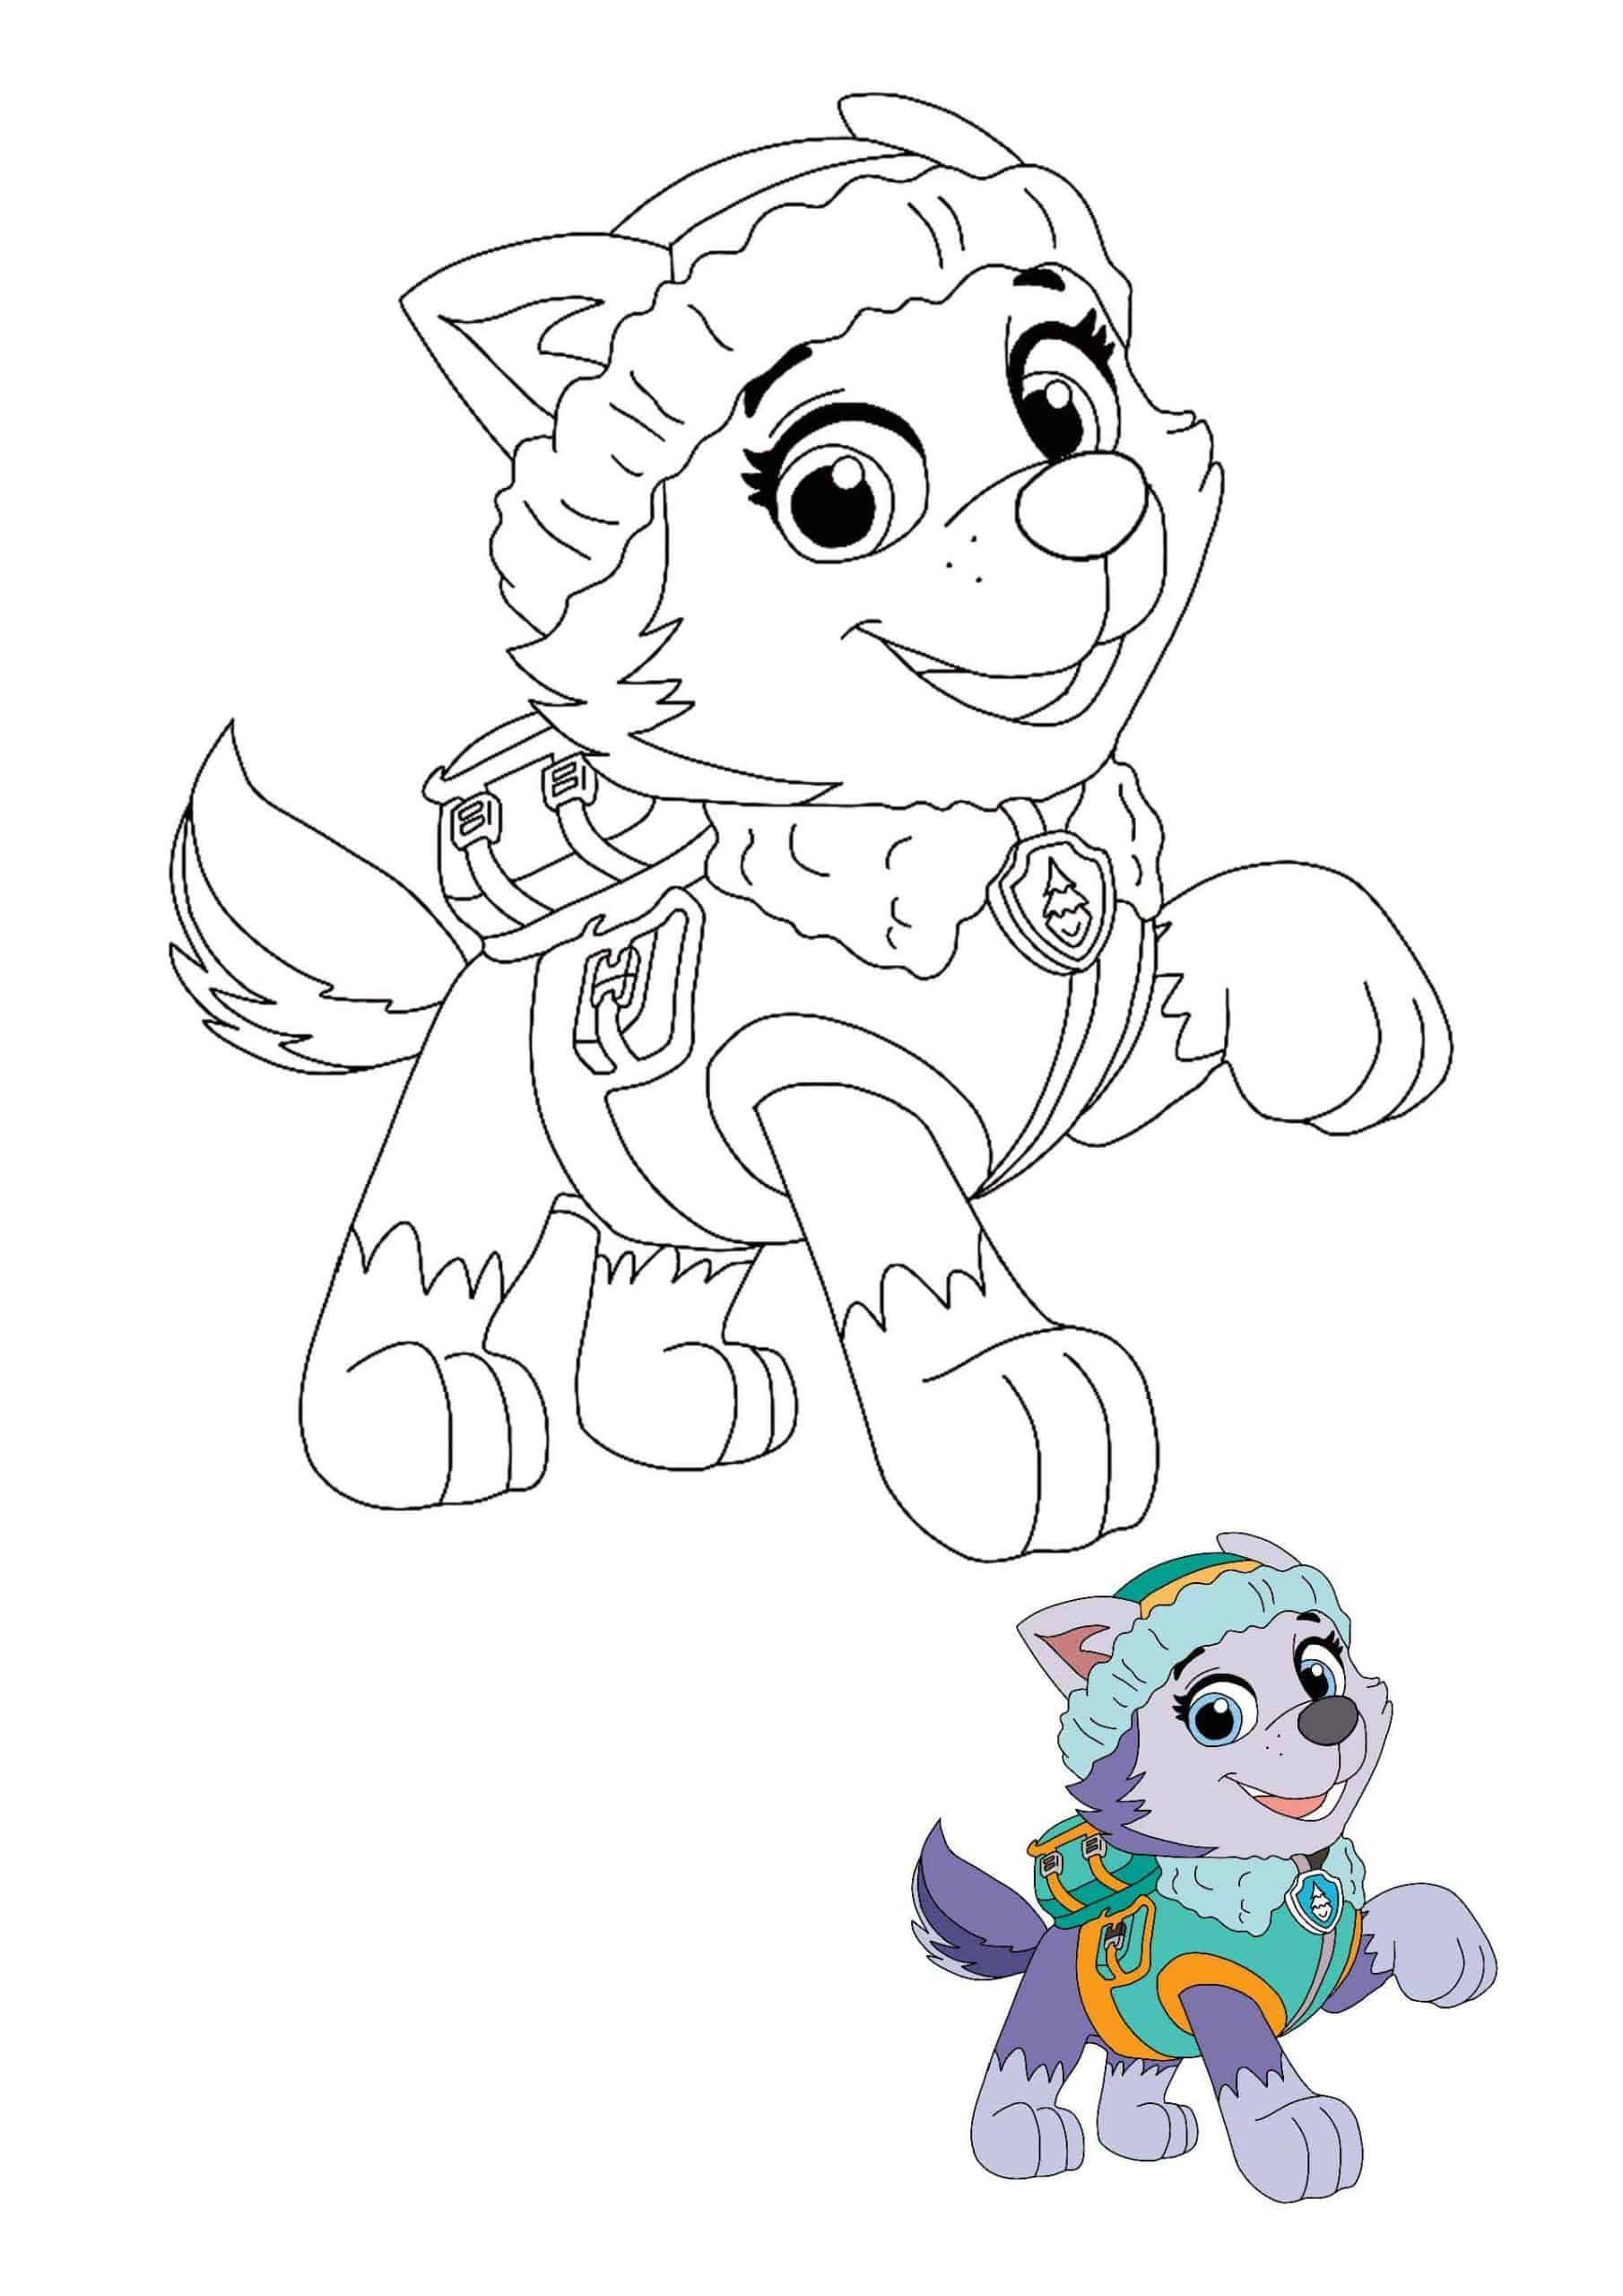 Paw Patrol Everest Coloring Pages Paw Patrol Coloring Everest Paw Patrol Free Printable Coloring Sheets